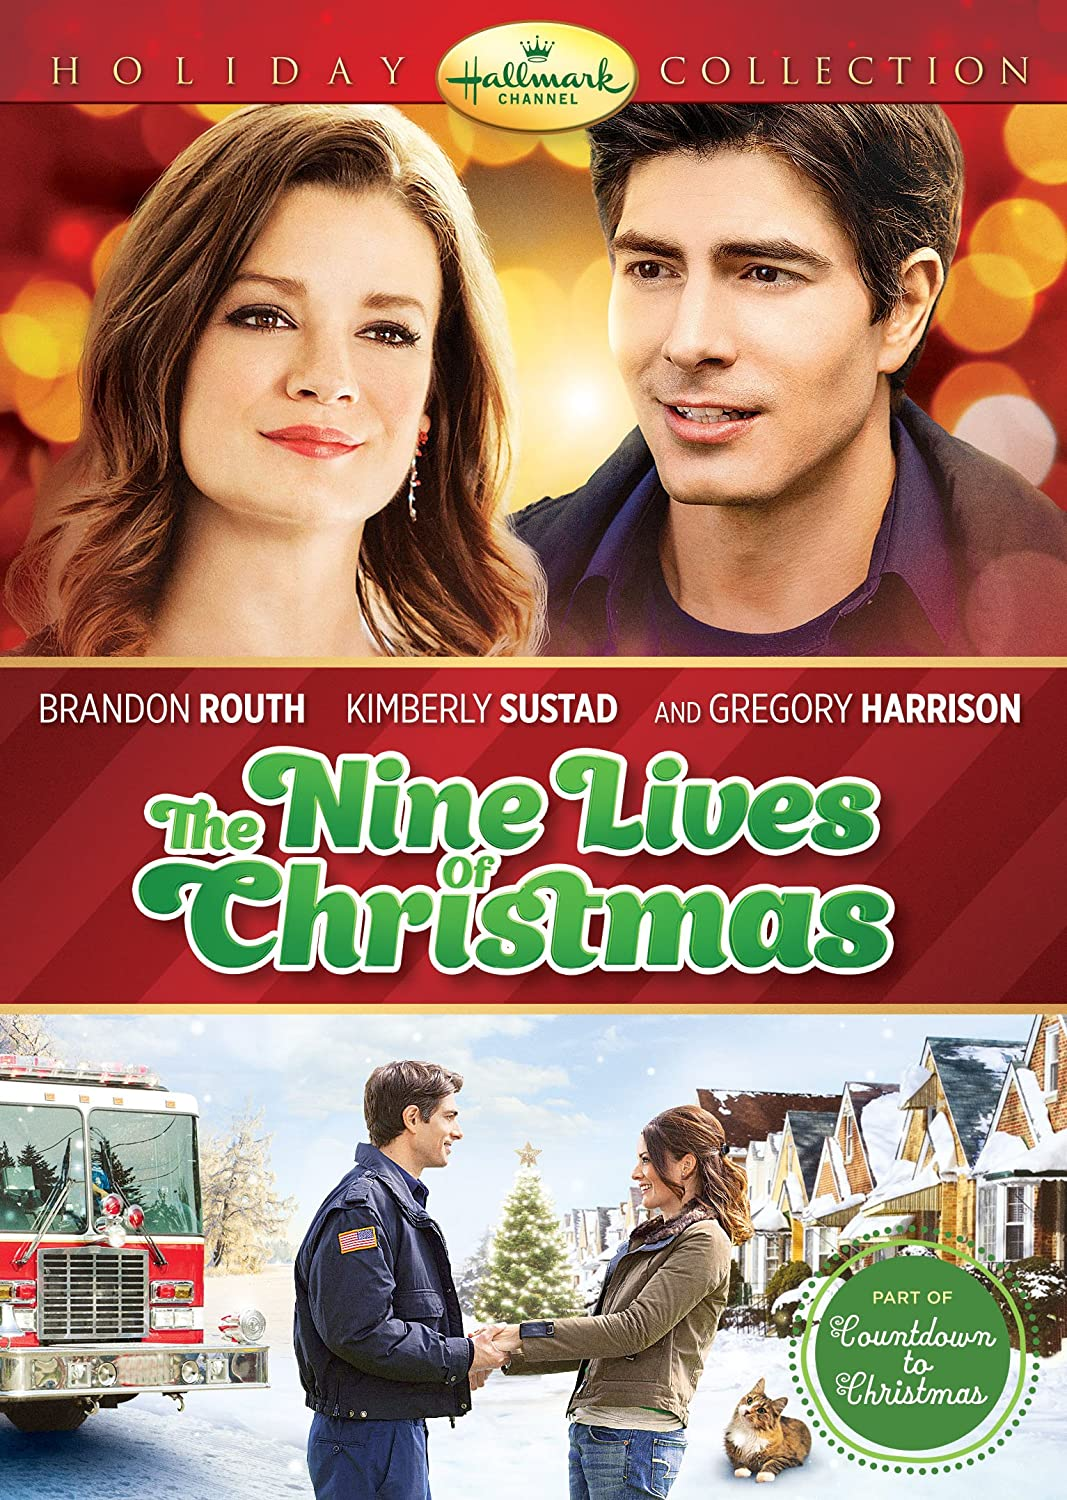 The Nine Lives of Christmas Brandon Routh Family Movie